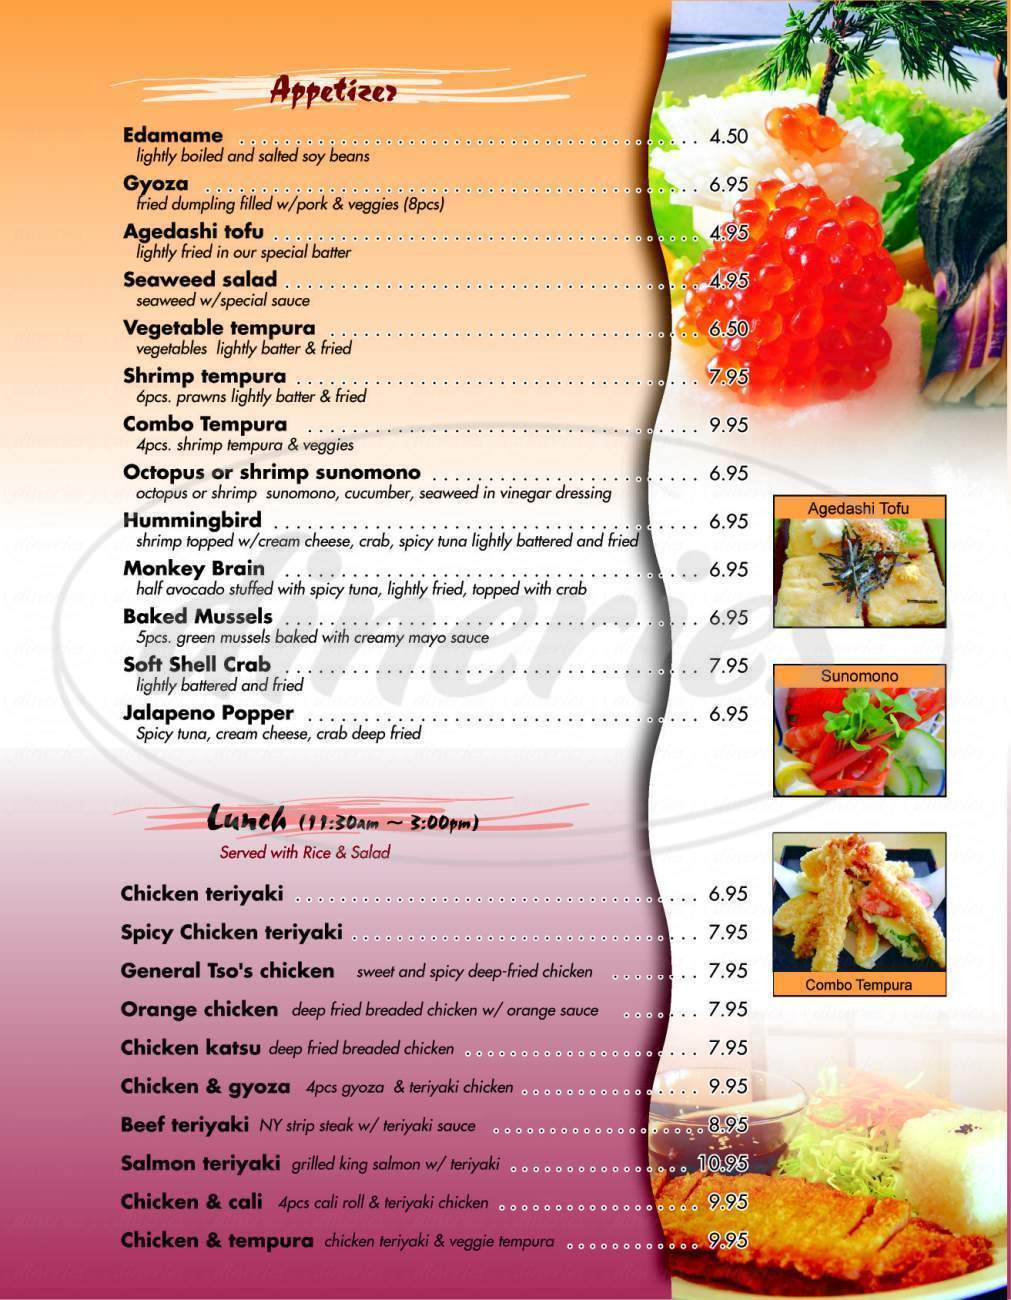 menu for Blue Fin Sushi